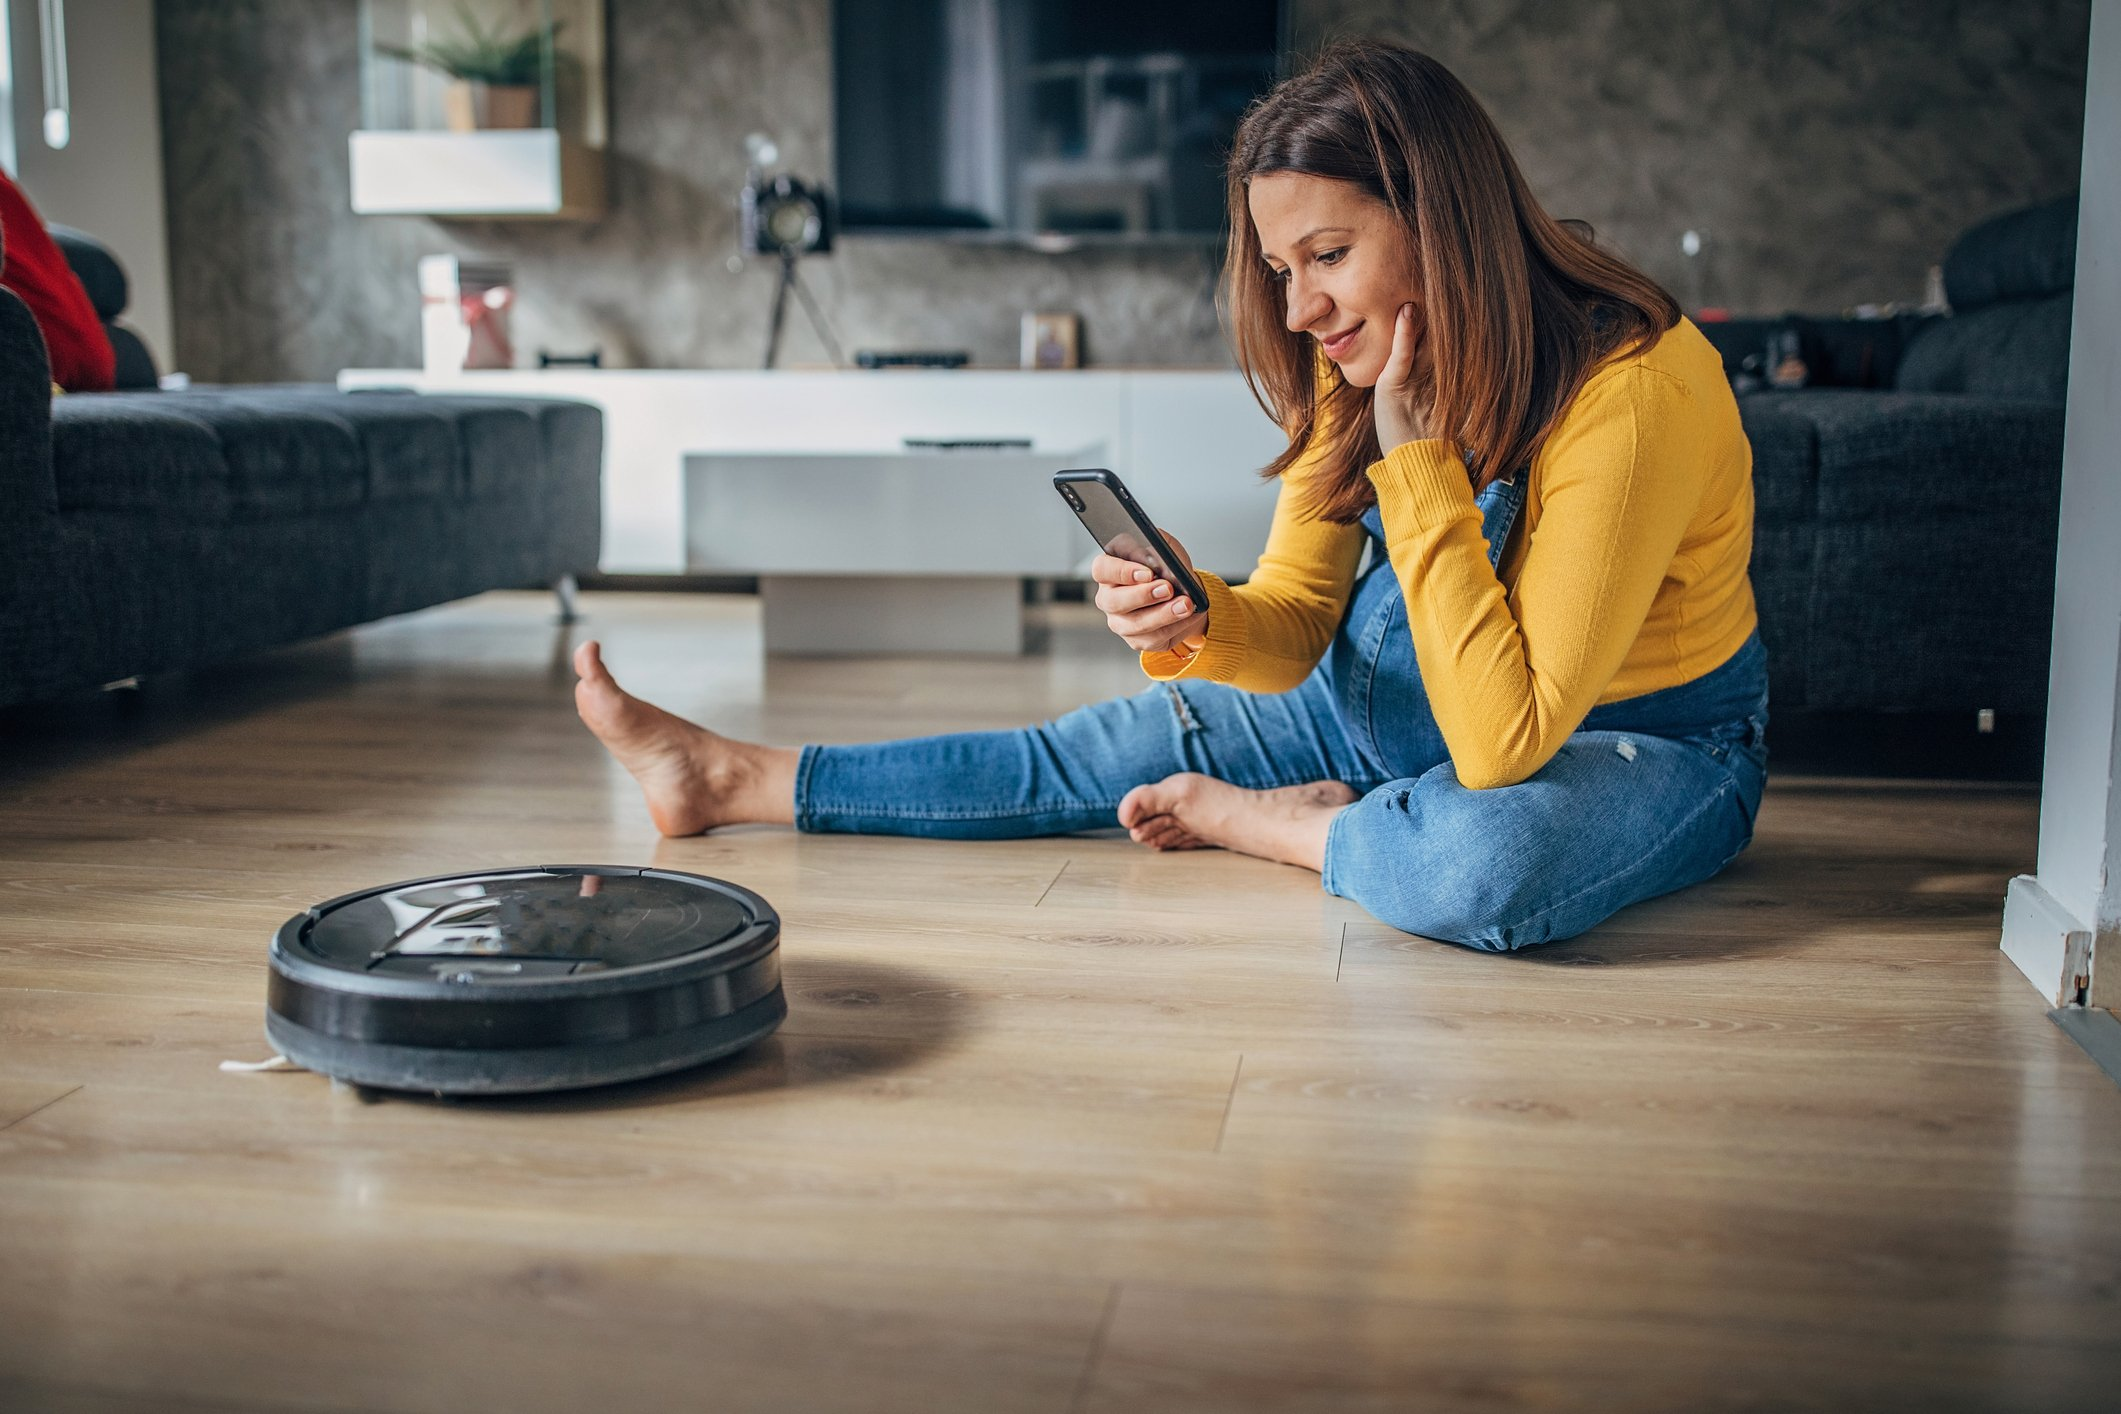 Pregnant woman using phone while robot vacuum cleaner is cleaning her home.